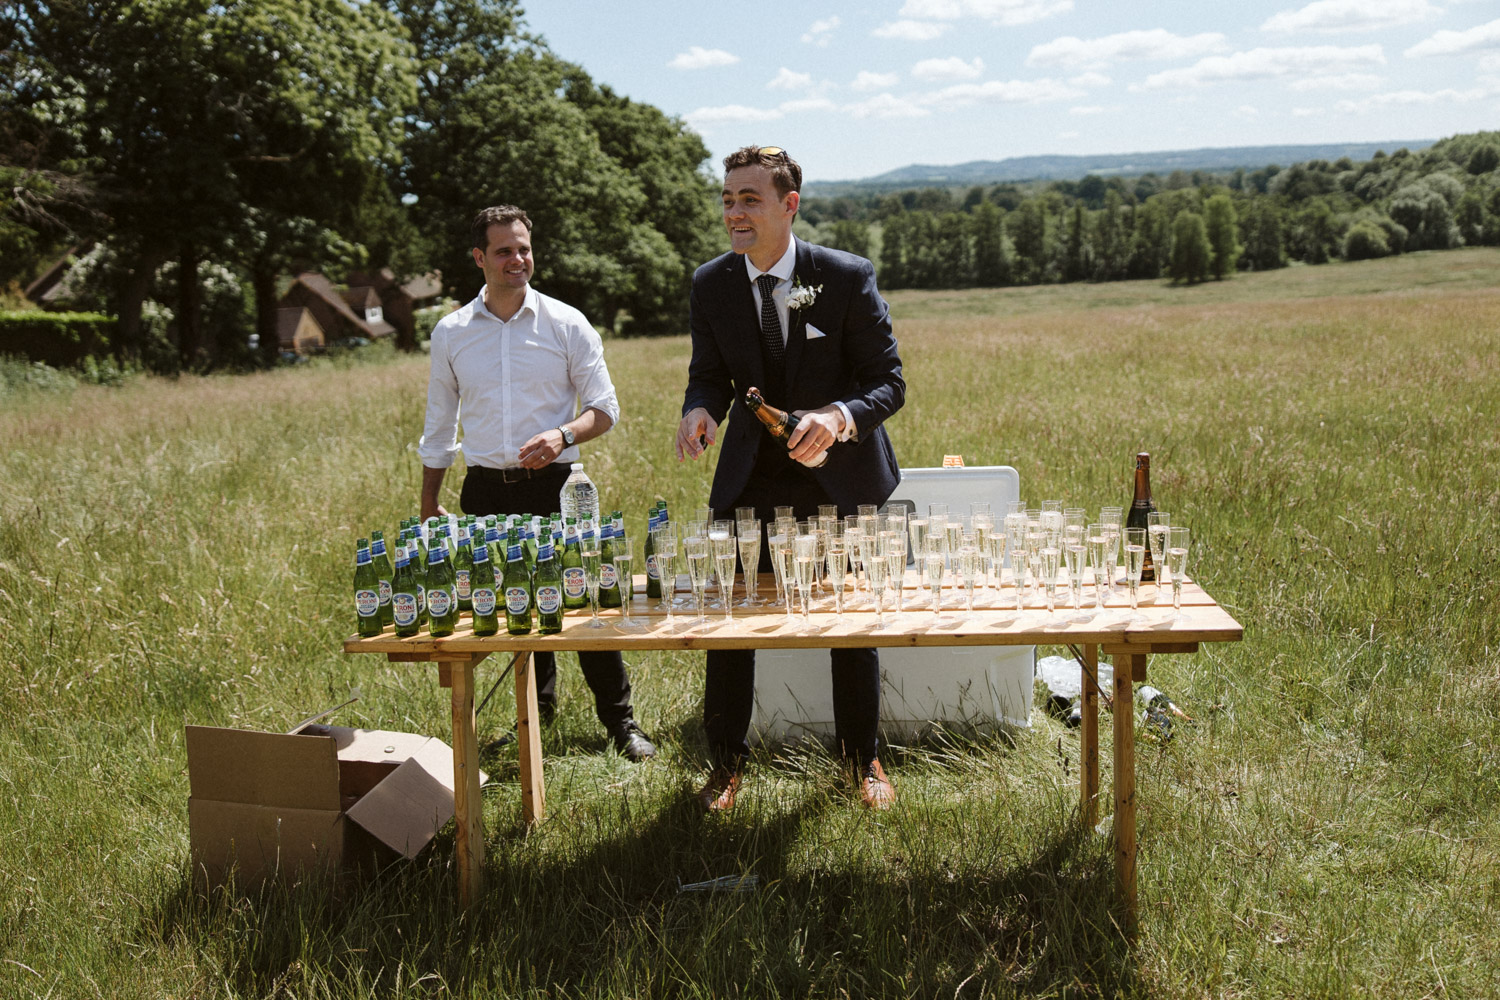 the best man had a table of cold drinks prepared for everyone as they entered the hidden valley